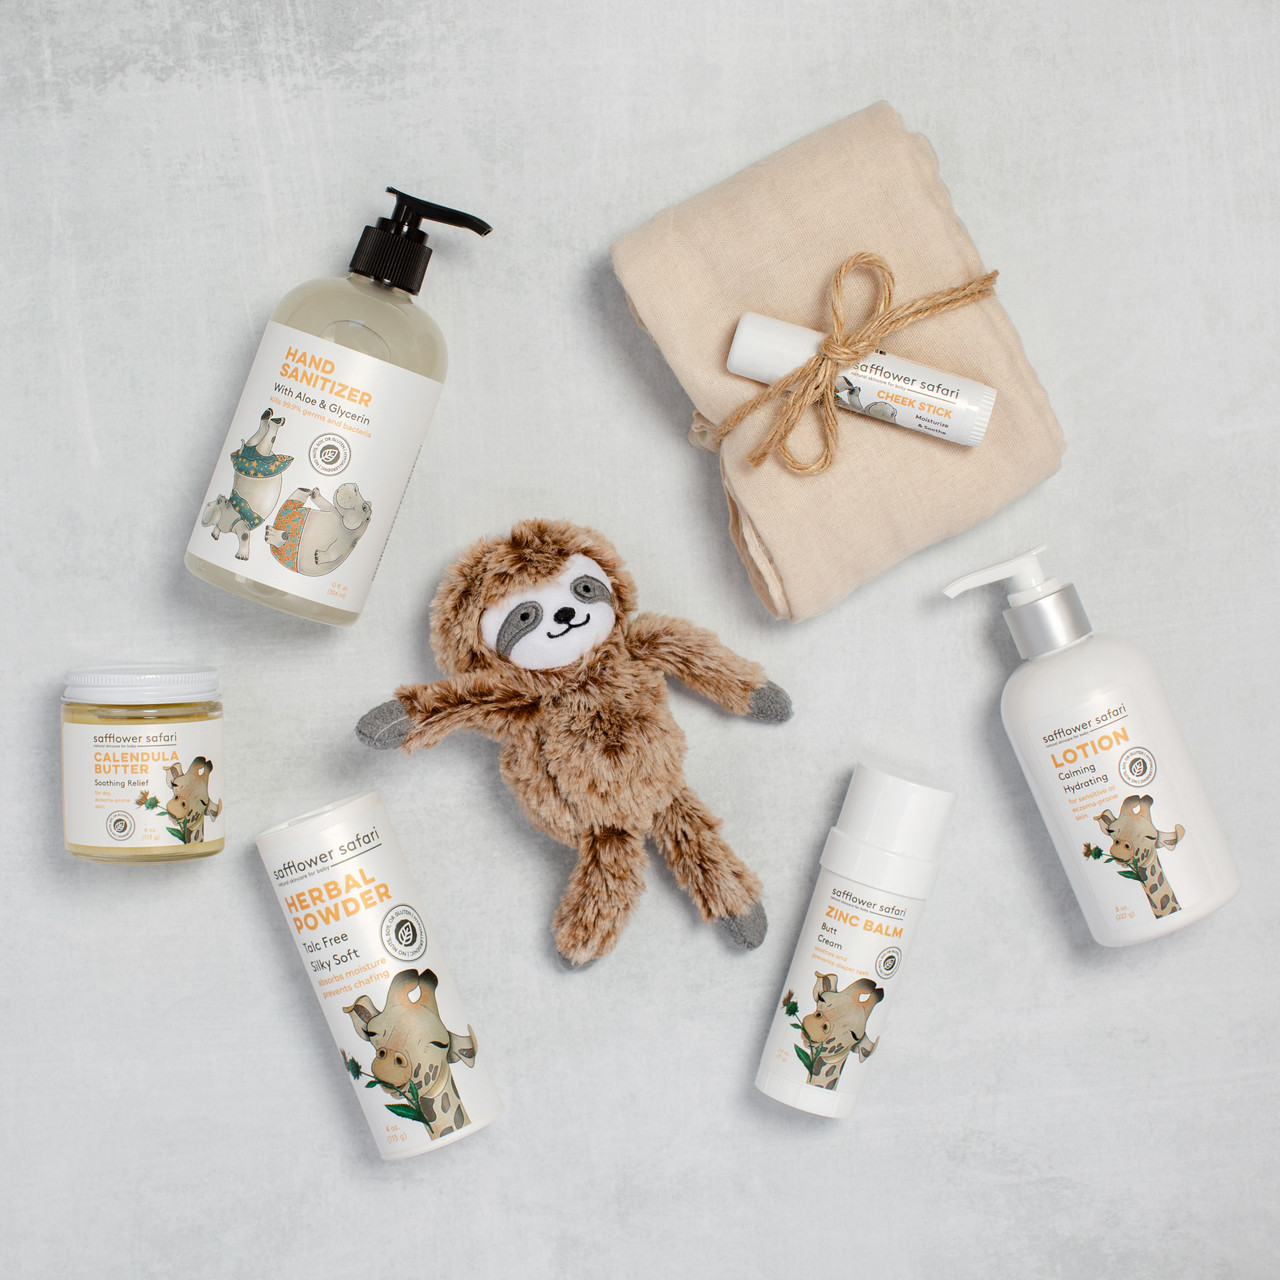 New Parents - Luxury Gift Box for Baby